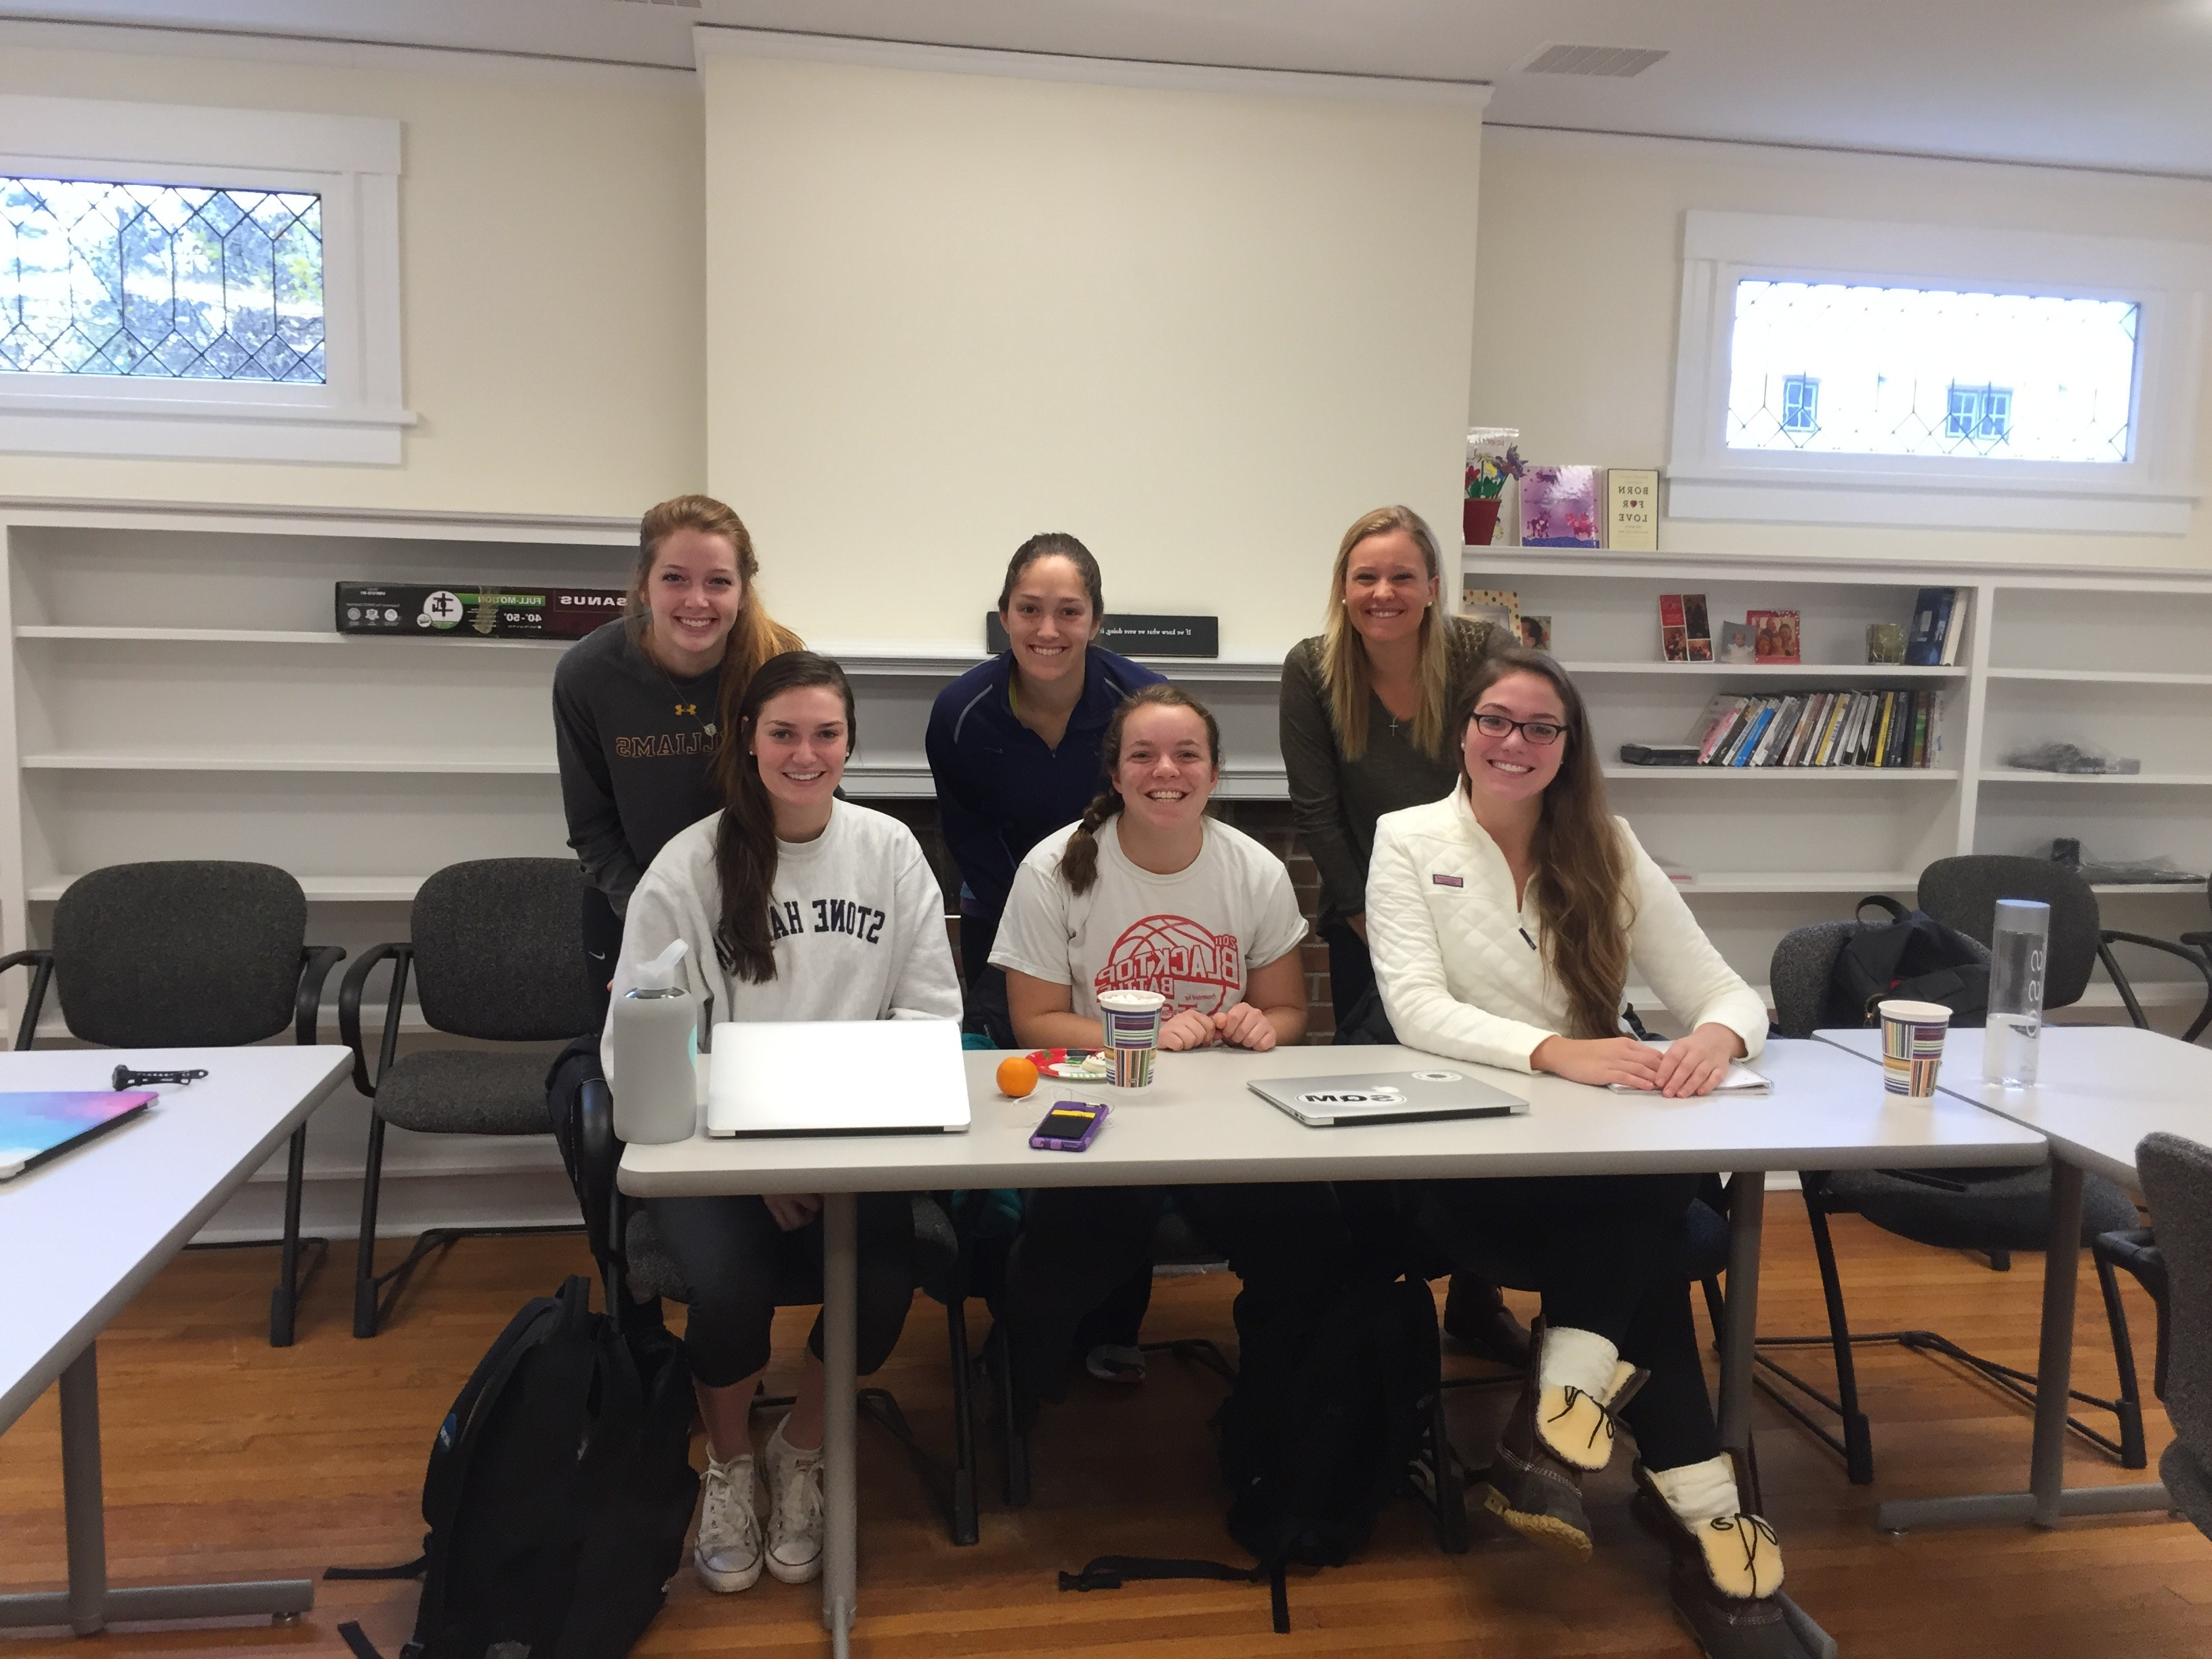 Students in Prof. Hane's Early Experience class